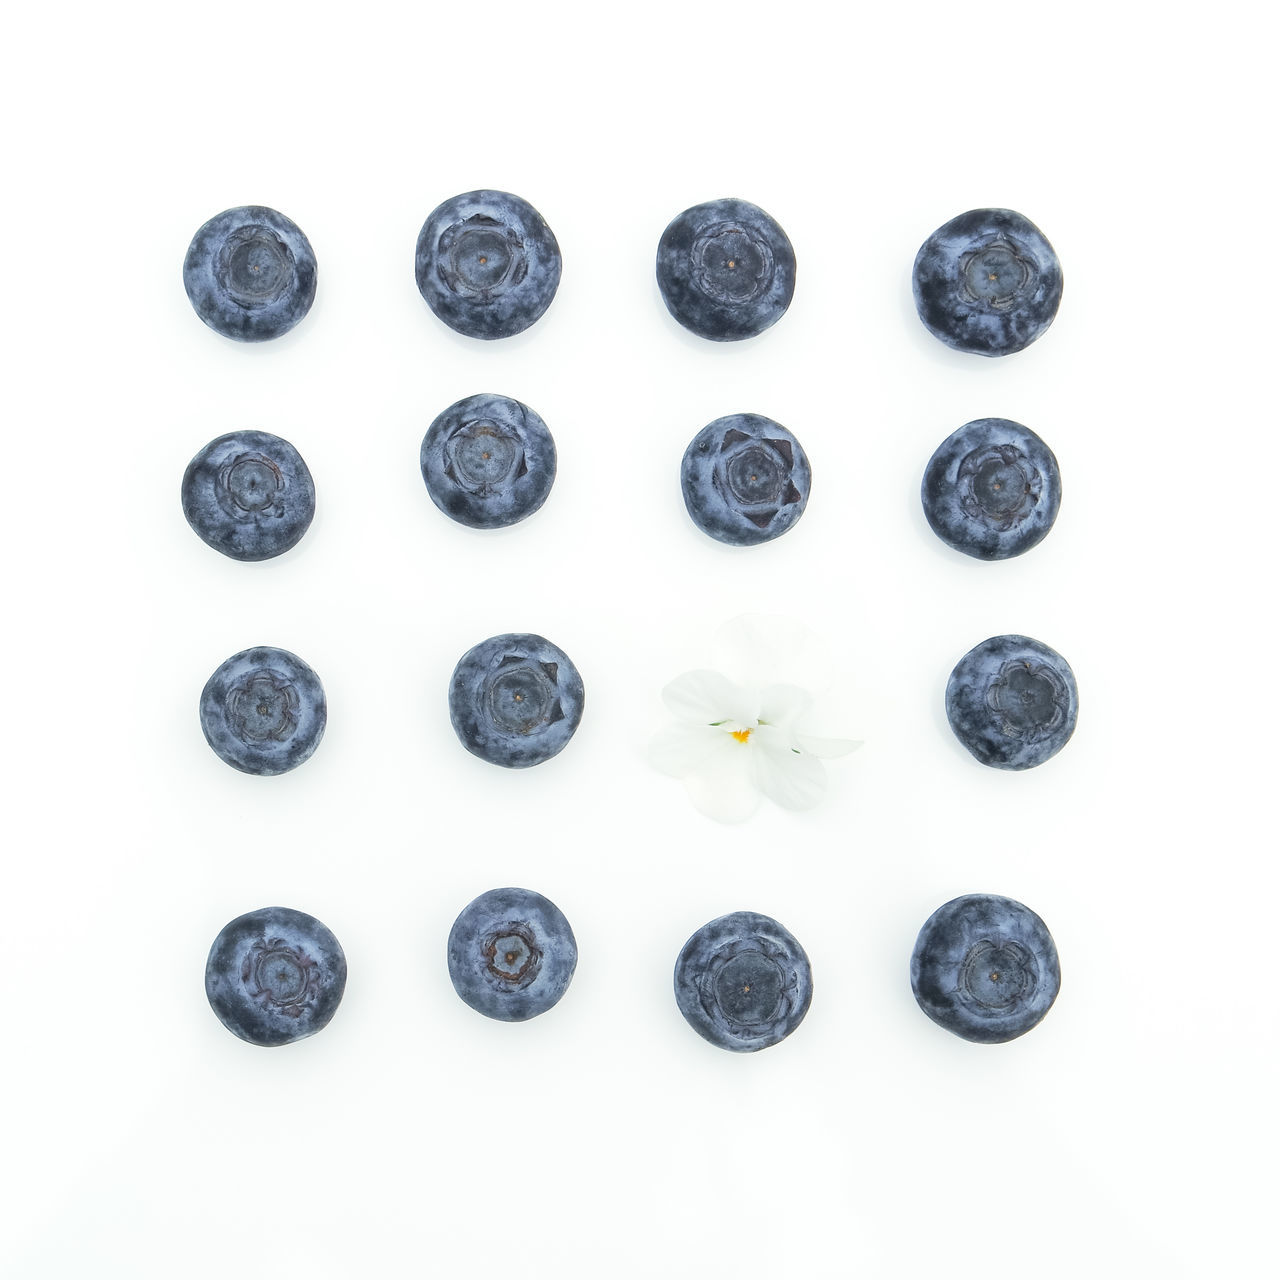 High Angle View Of Blueberries Against White Background